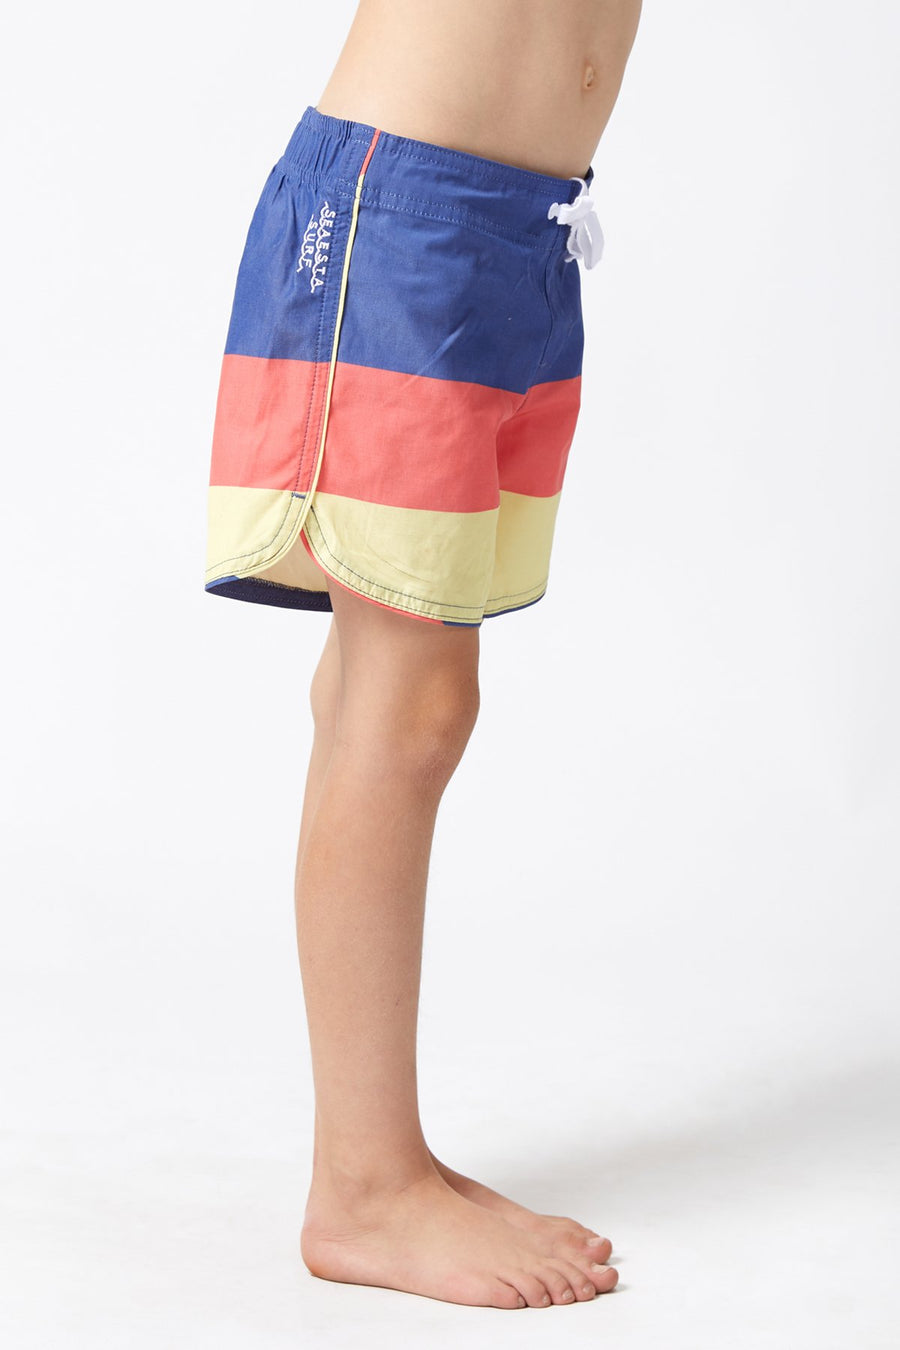 Triple Scoop / Velvet / Boardshorts